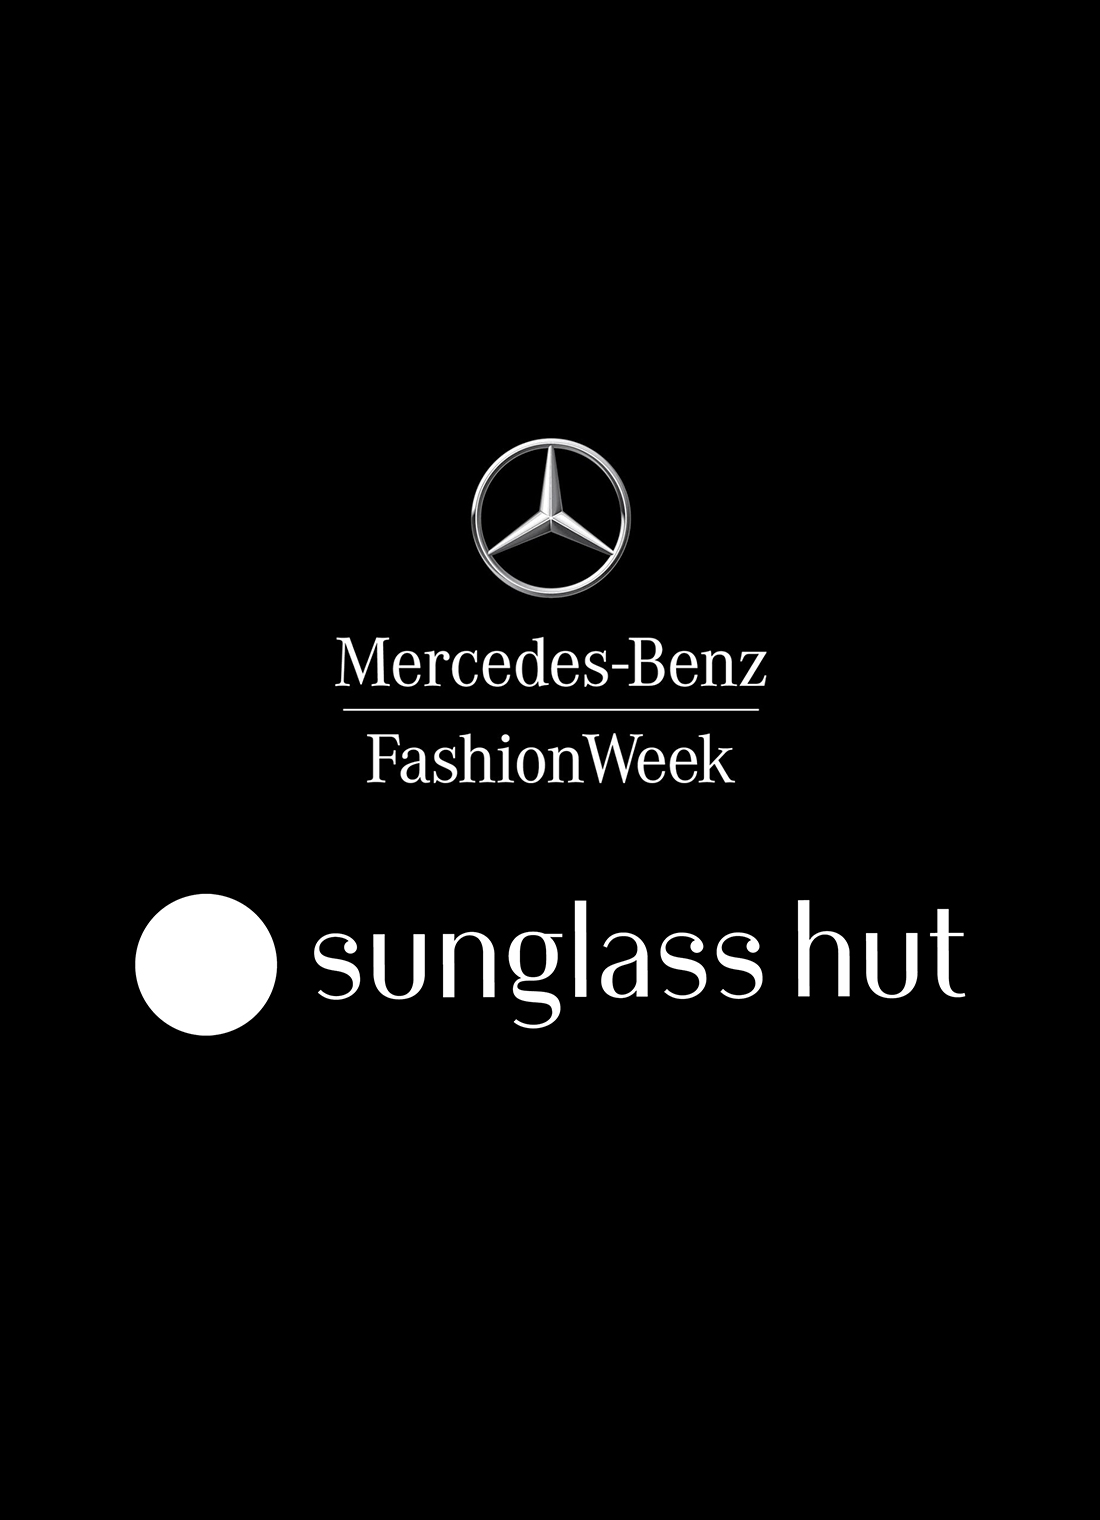 Sunglass Hut Mercedes Benz Fashion Week - Brandoutloud